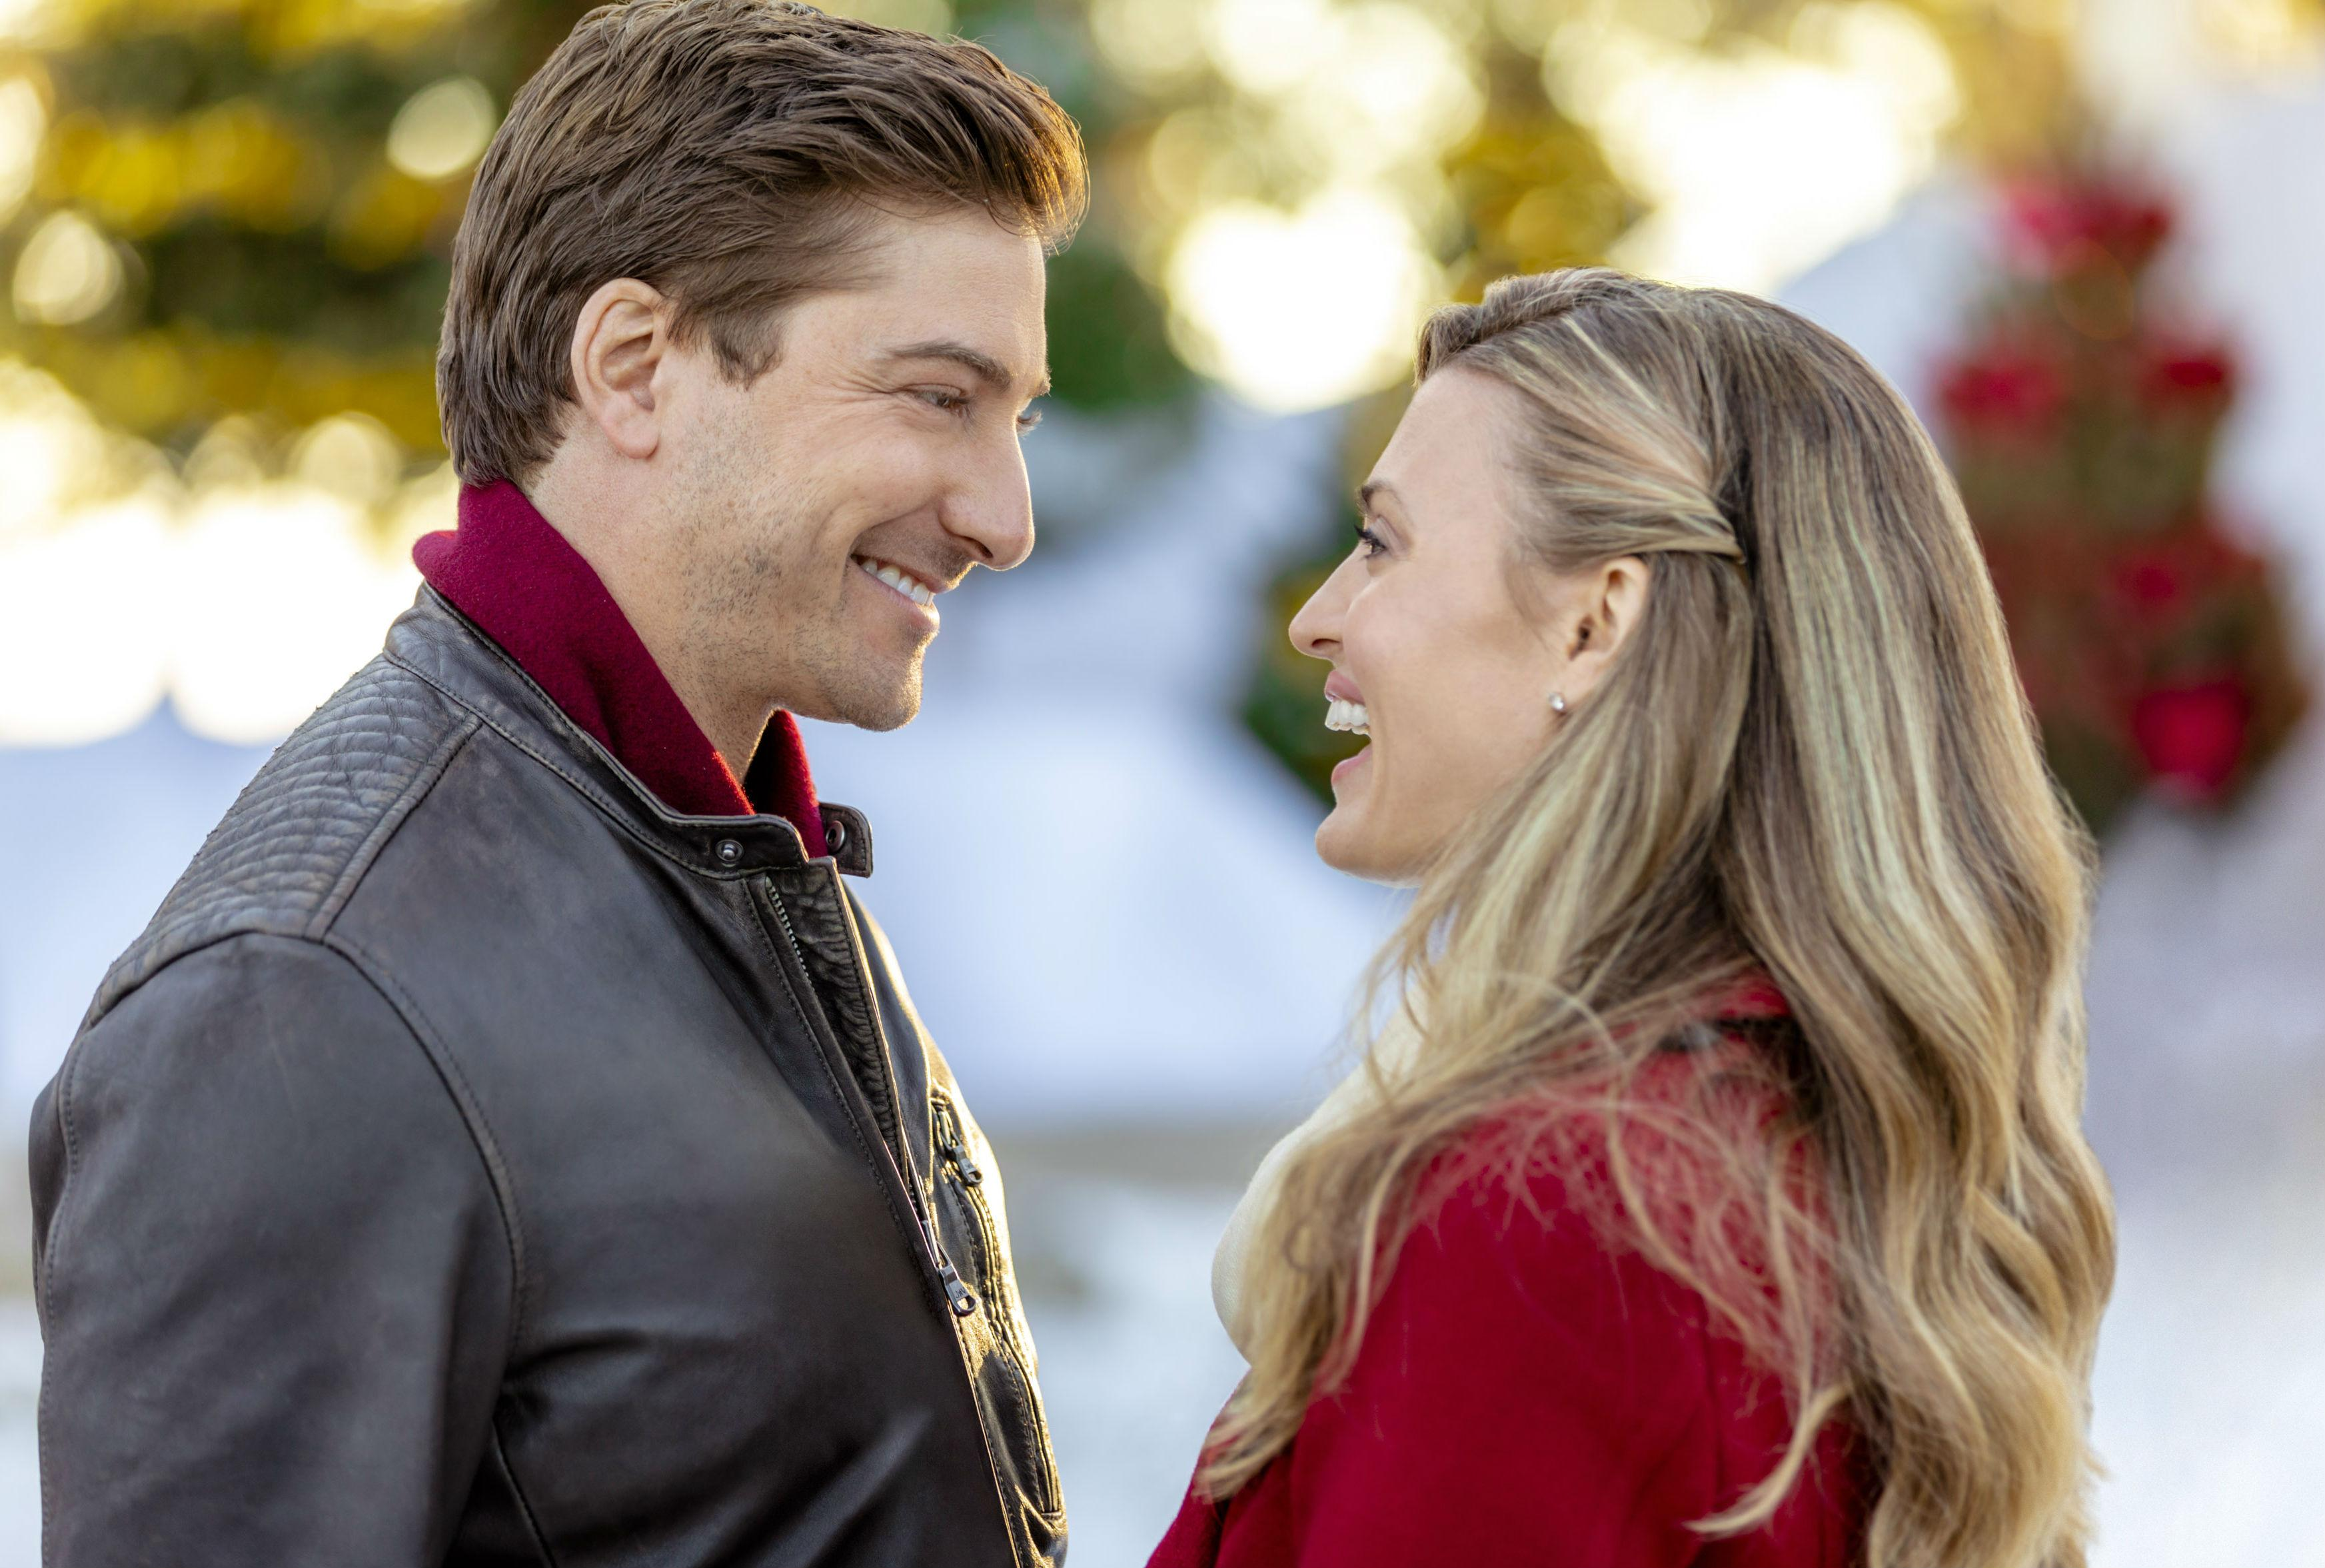 Why Everyone Hates (but Actually Secretly Loves) Hallmark Movies